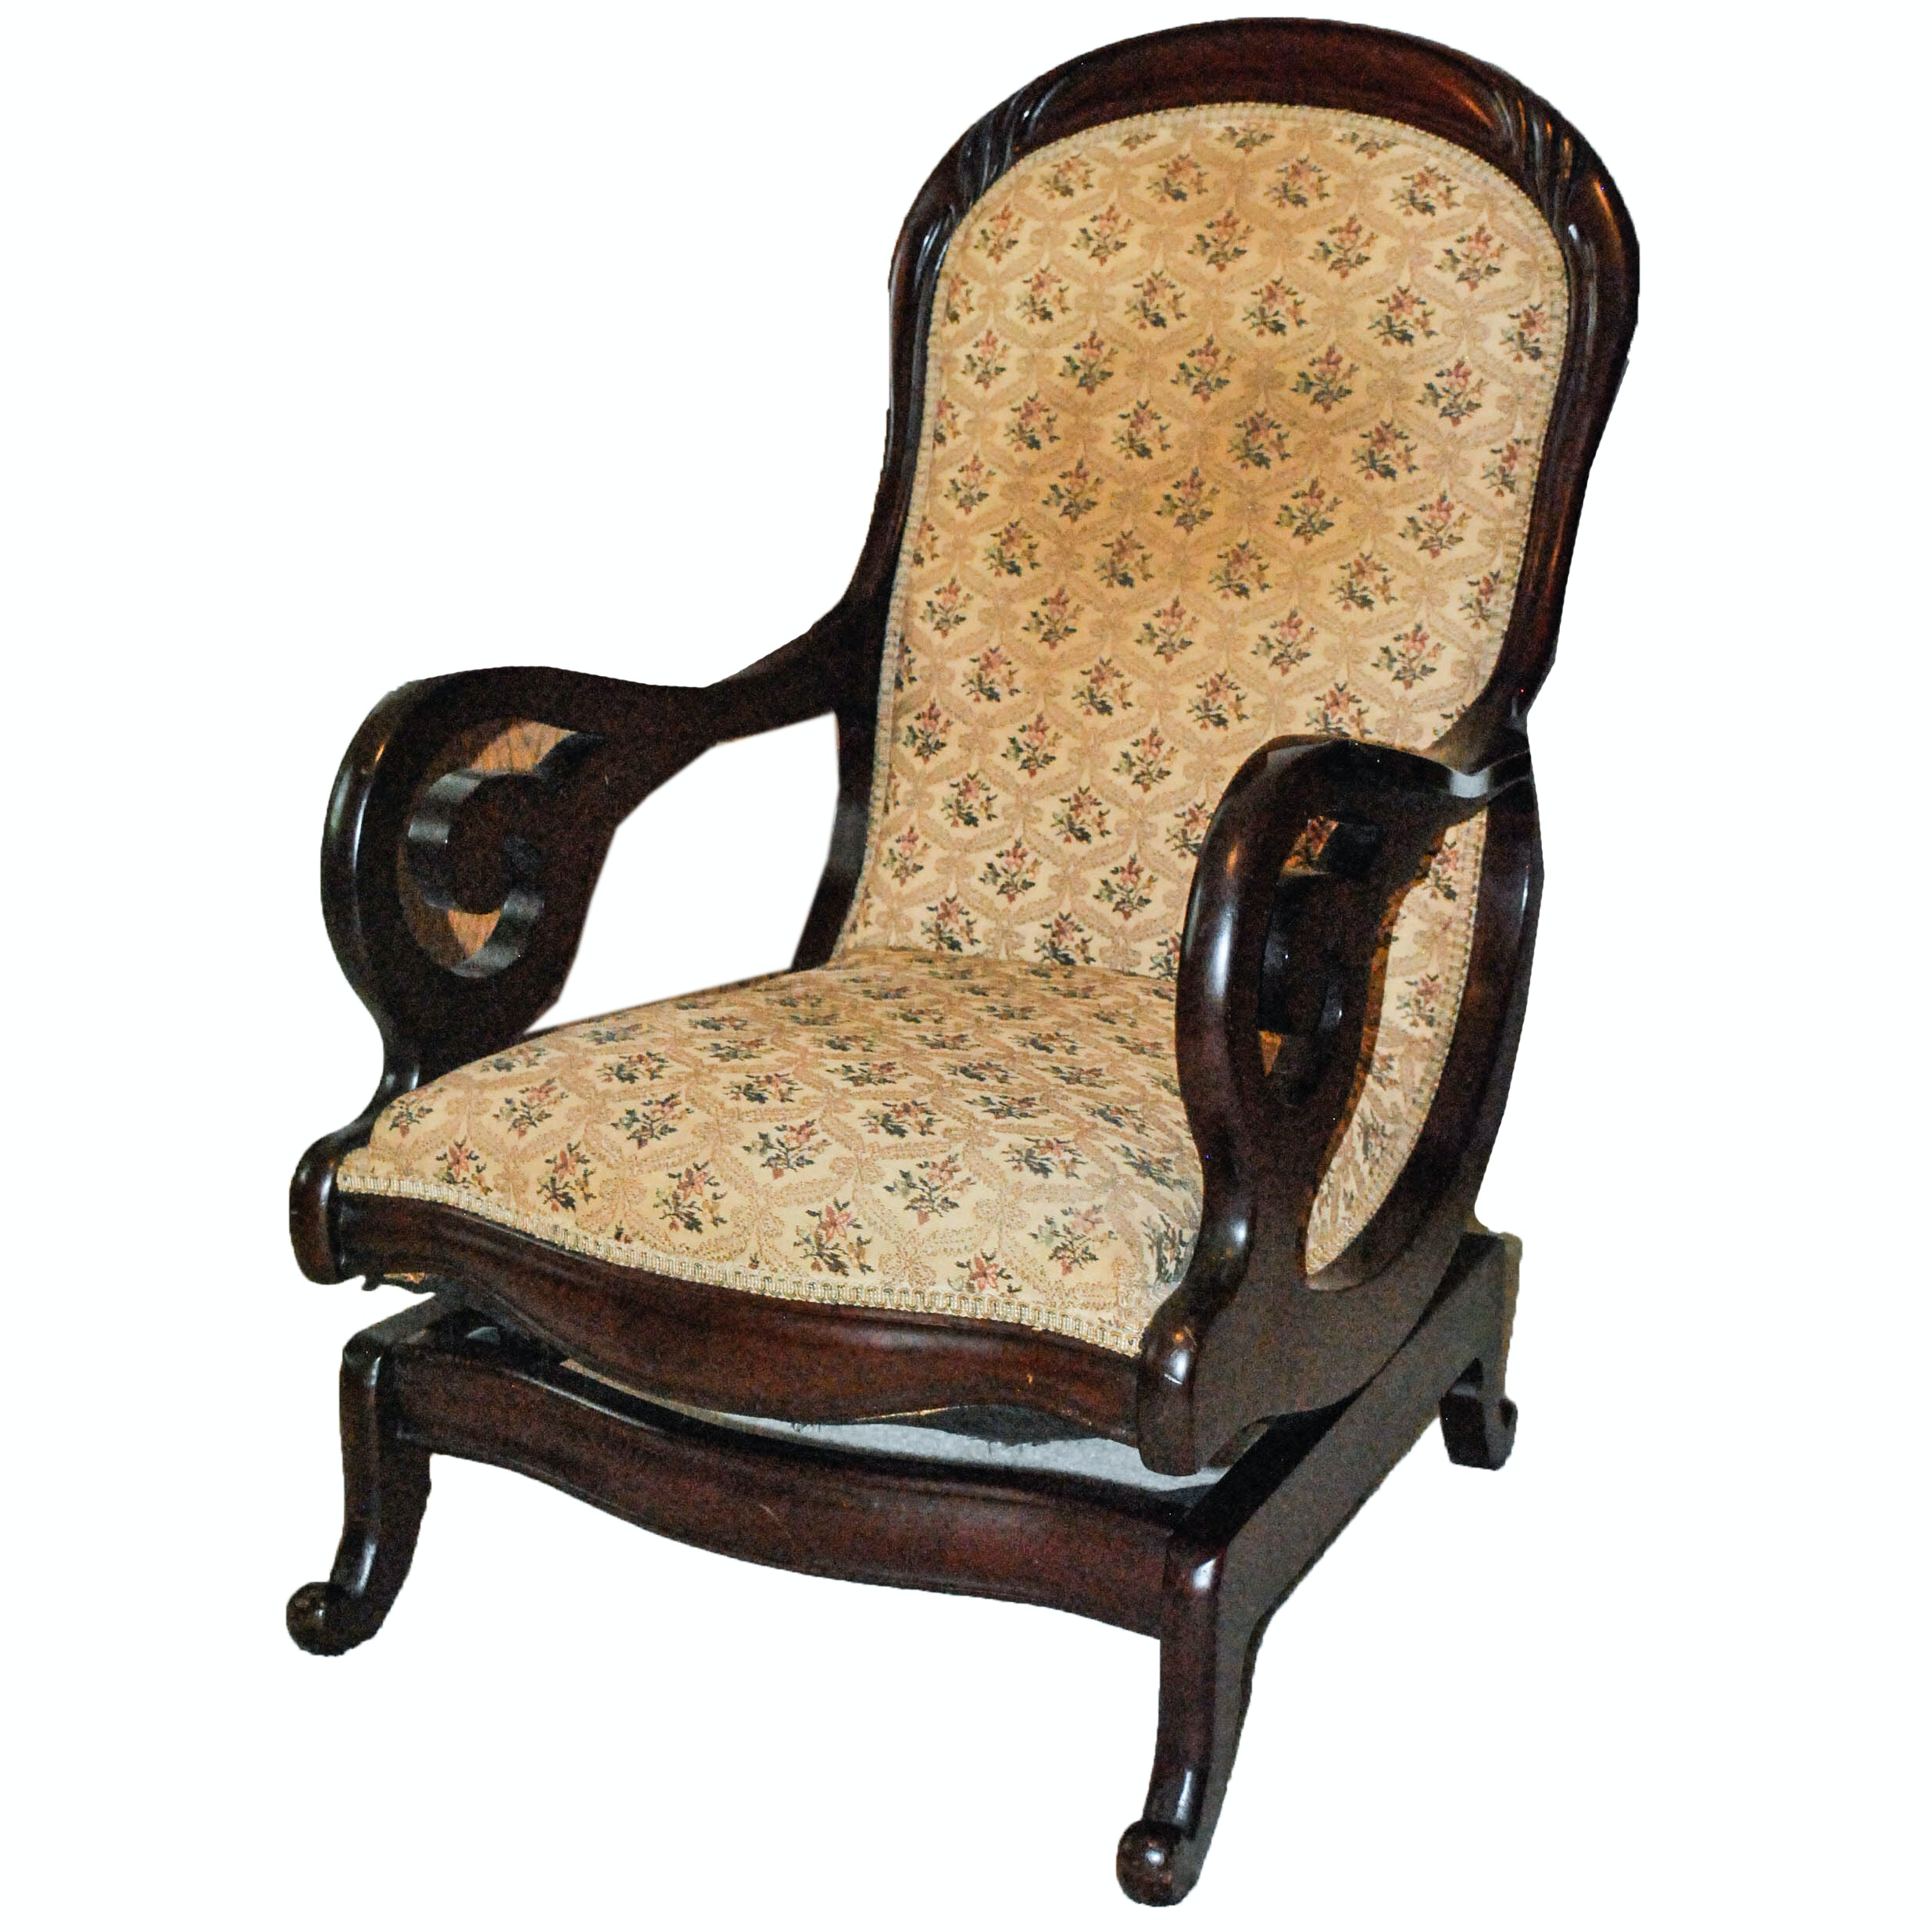 Victorian Style Rocking Chair